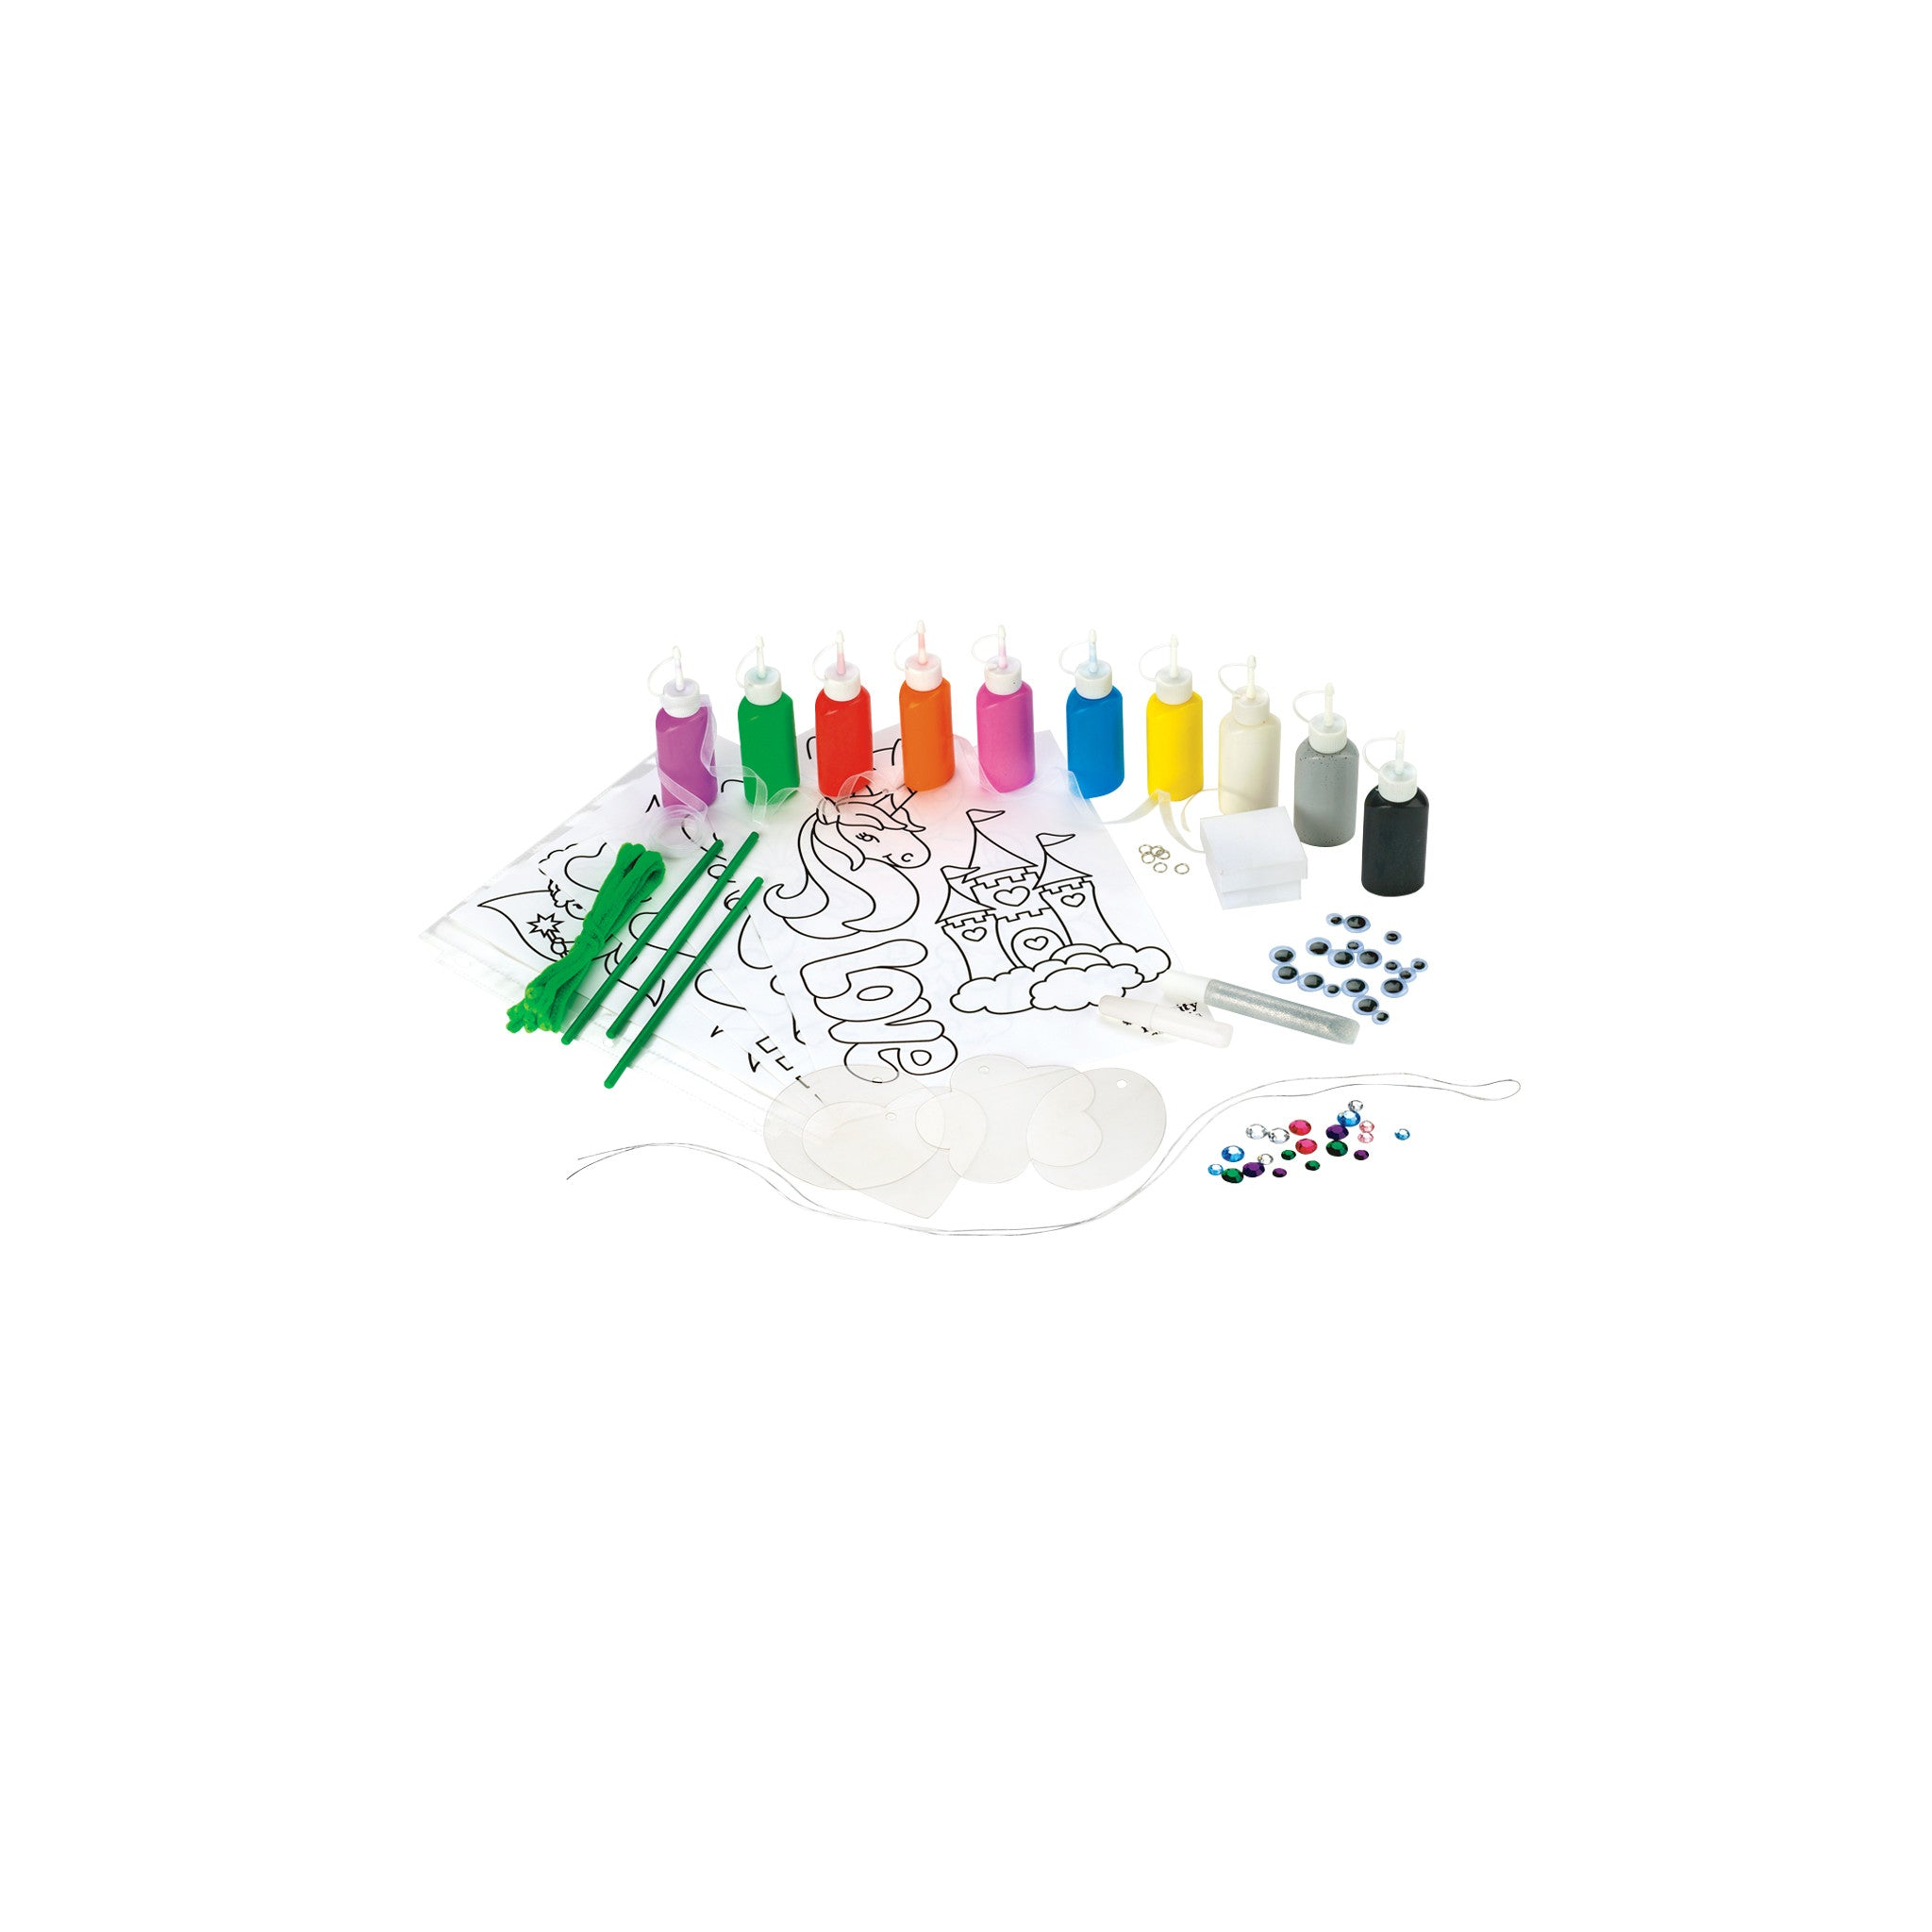 Sparkling 3d Paint Activity Kit 1941000 Faber Castell Usa